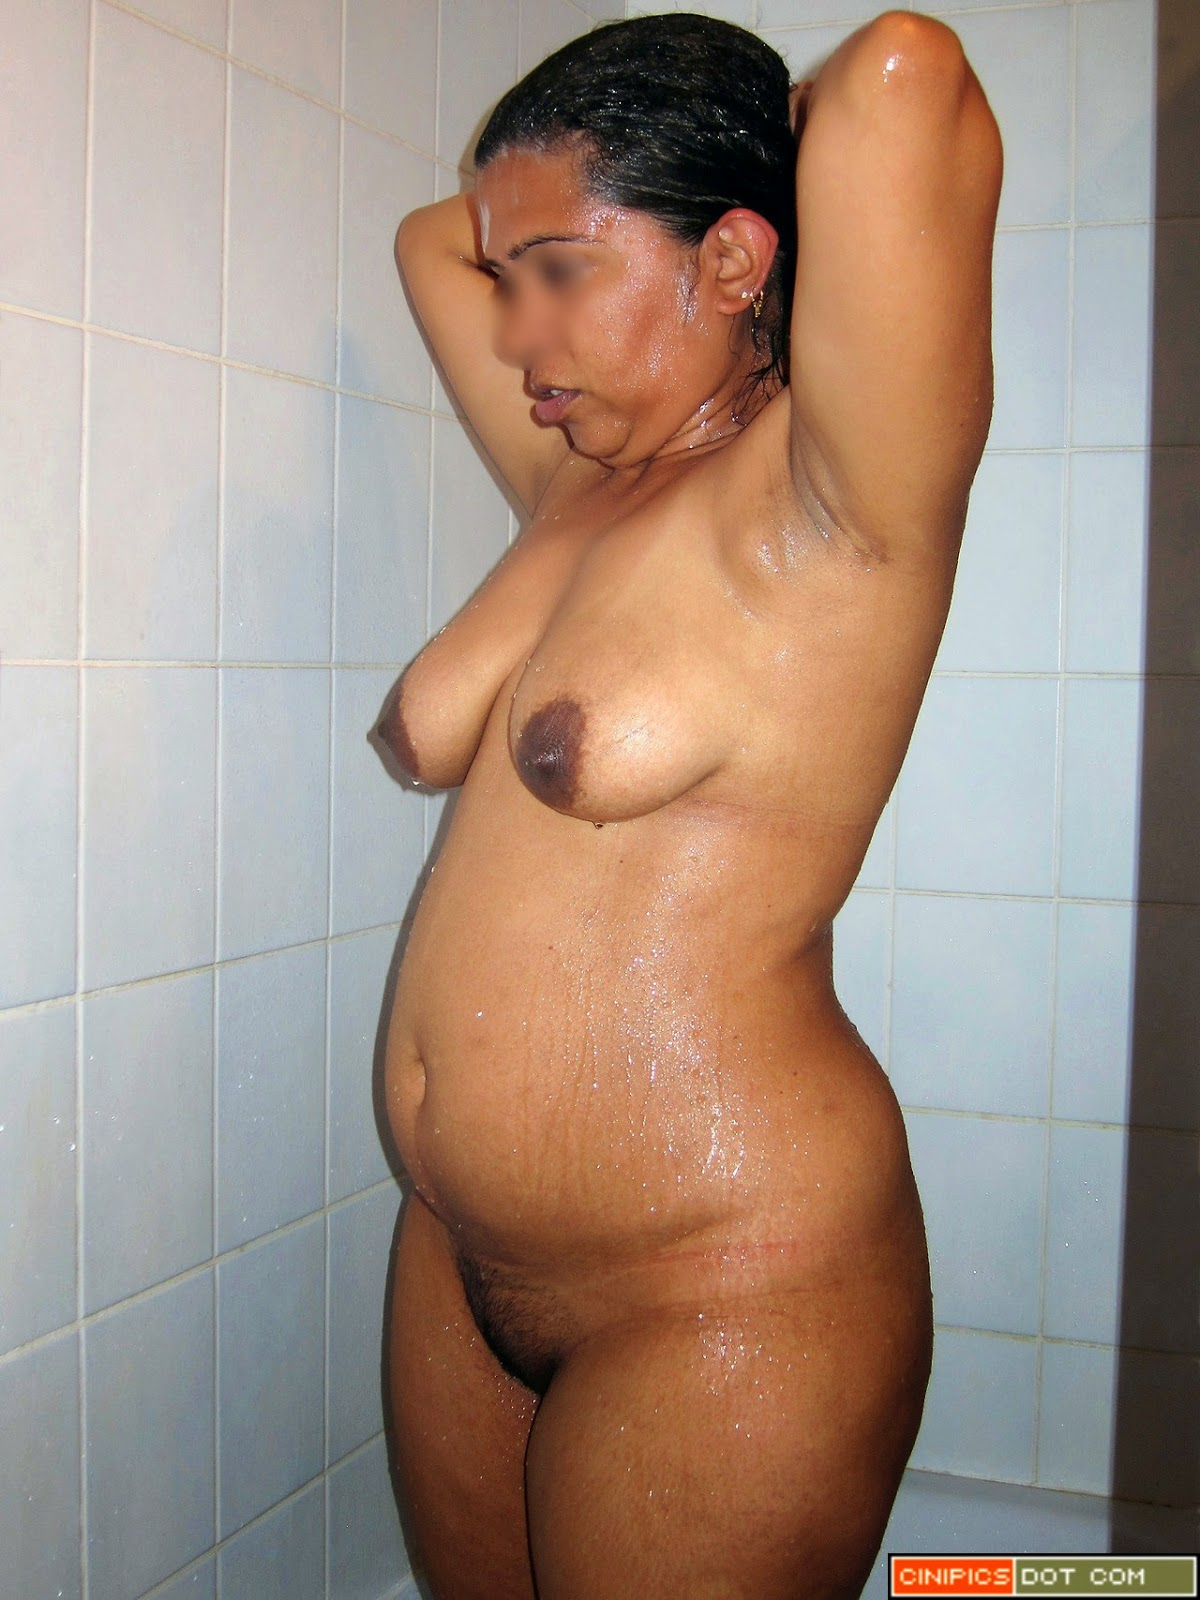 kerala women bathroom full nude